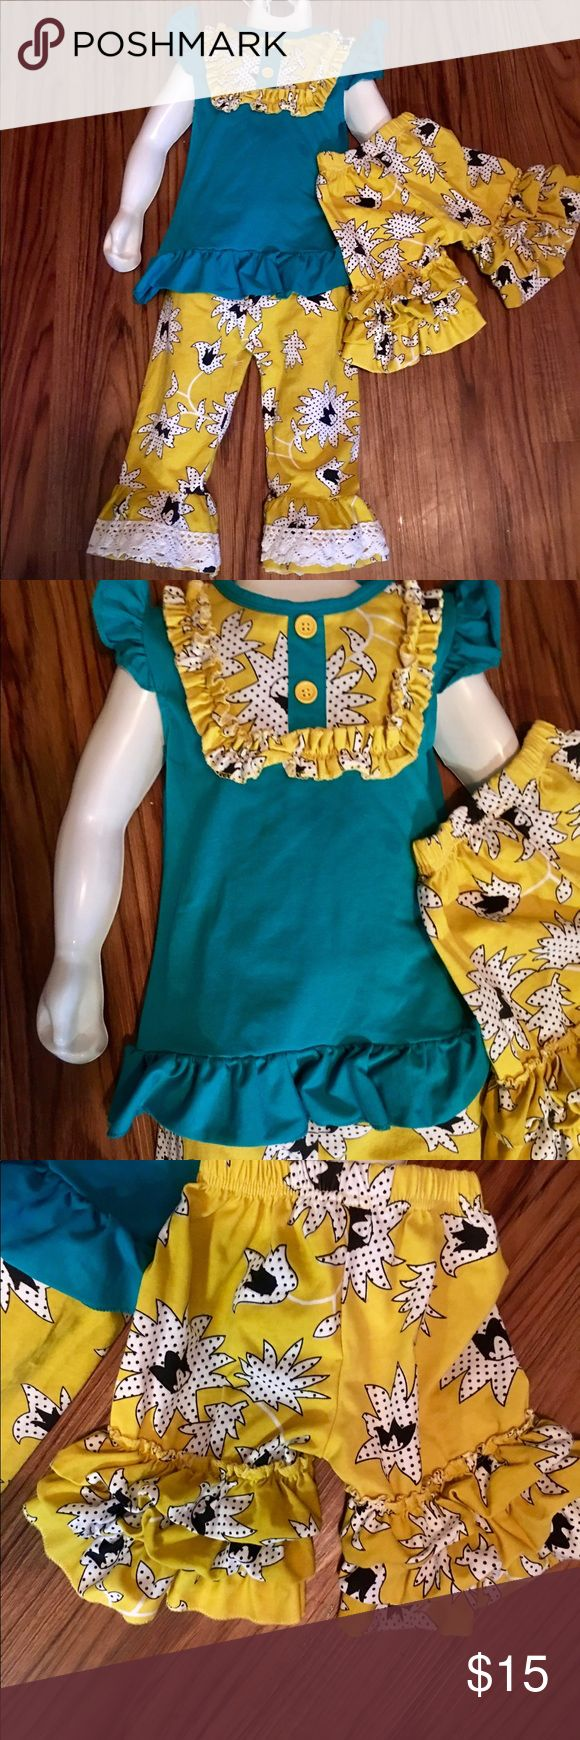 3pc ruffled boutique outfit EUC 3 of teal and yellow ruffled boutique outfit  shirt pants and shorts EUC NO stains rips tears or wear Spilled Rainbow Glitter Boutique Matching Sets